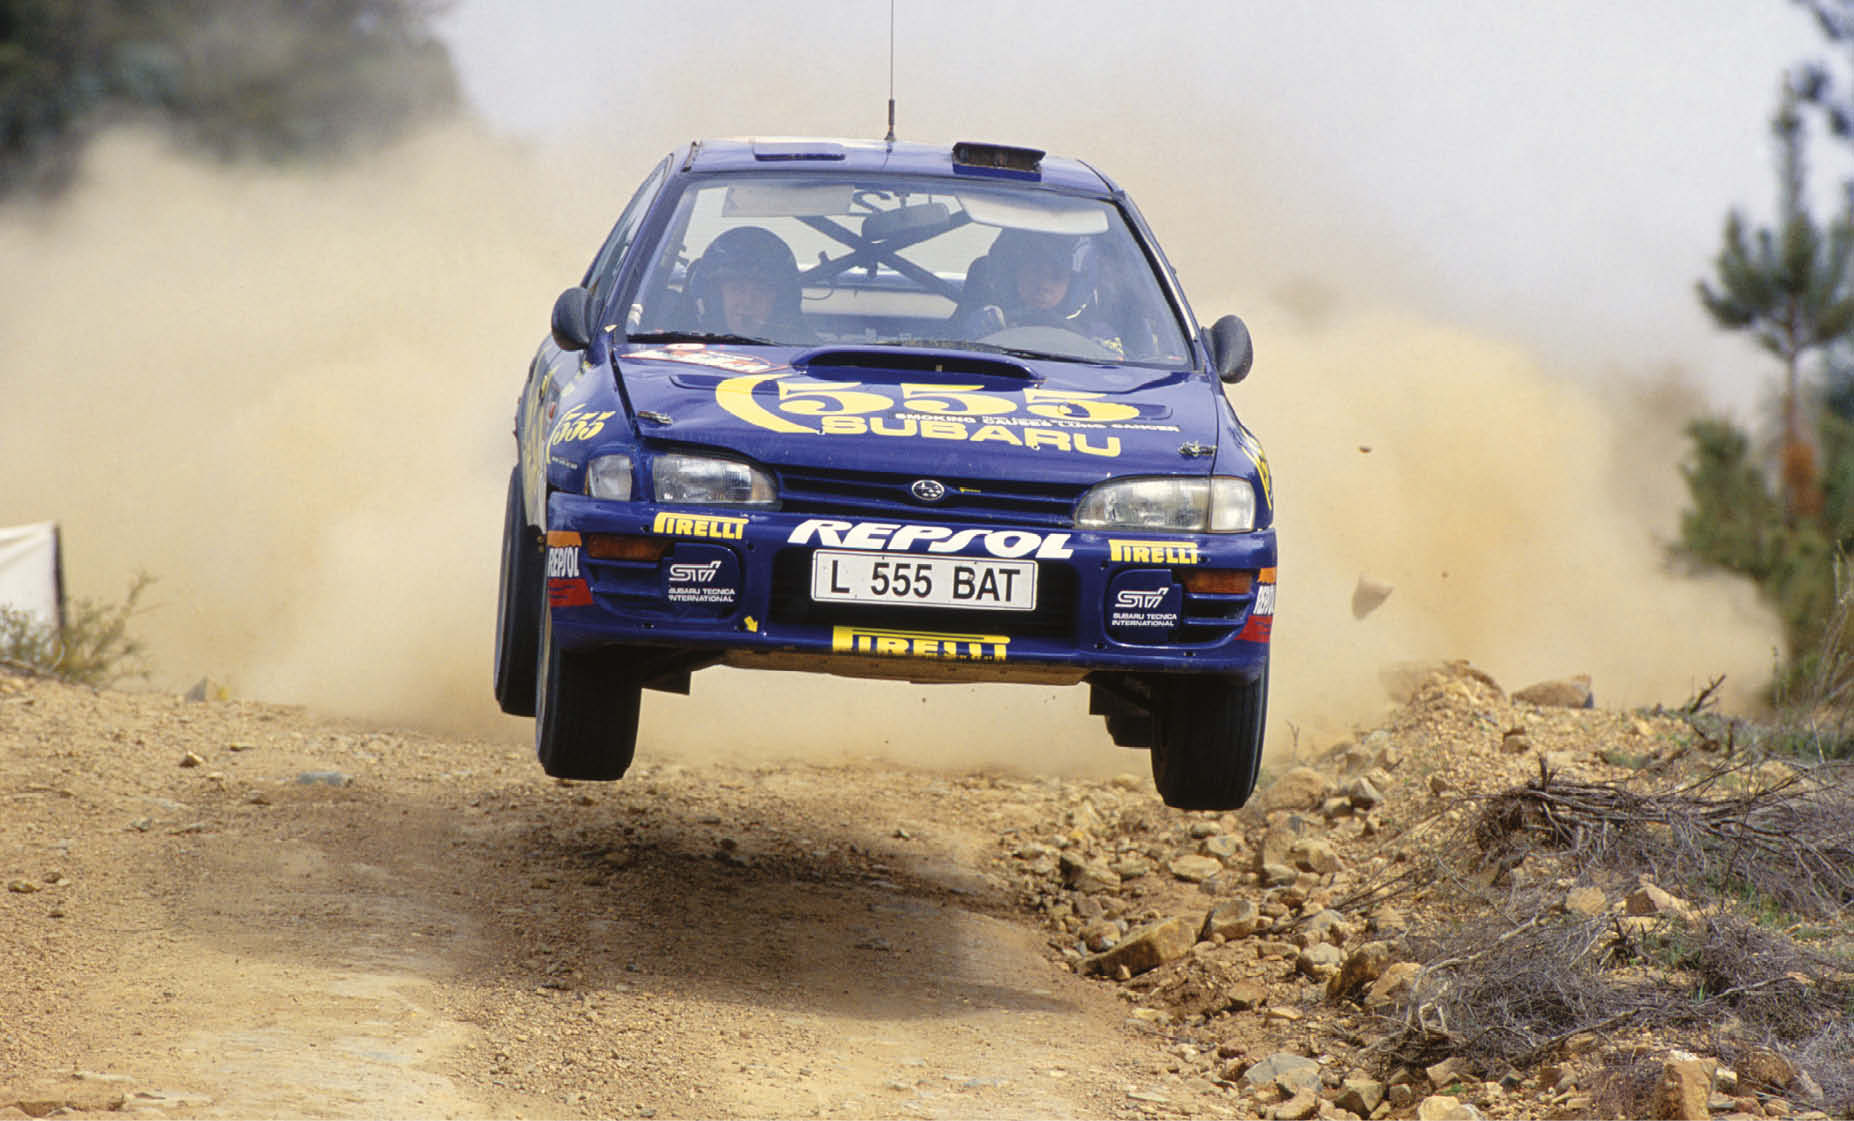 The WRC has struggled for mass appeal since the loss of stars like Colin McRae